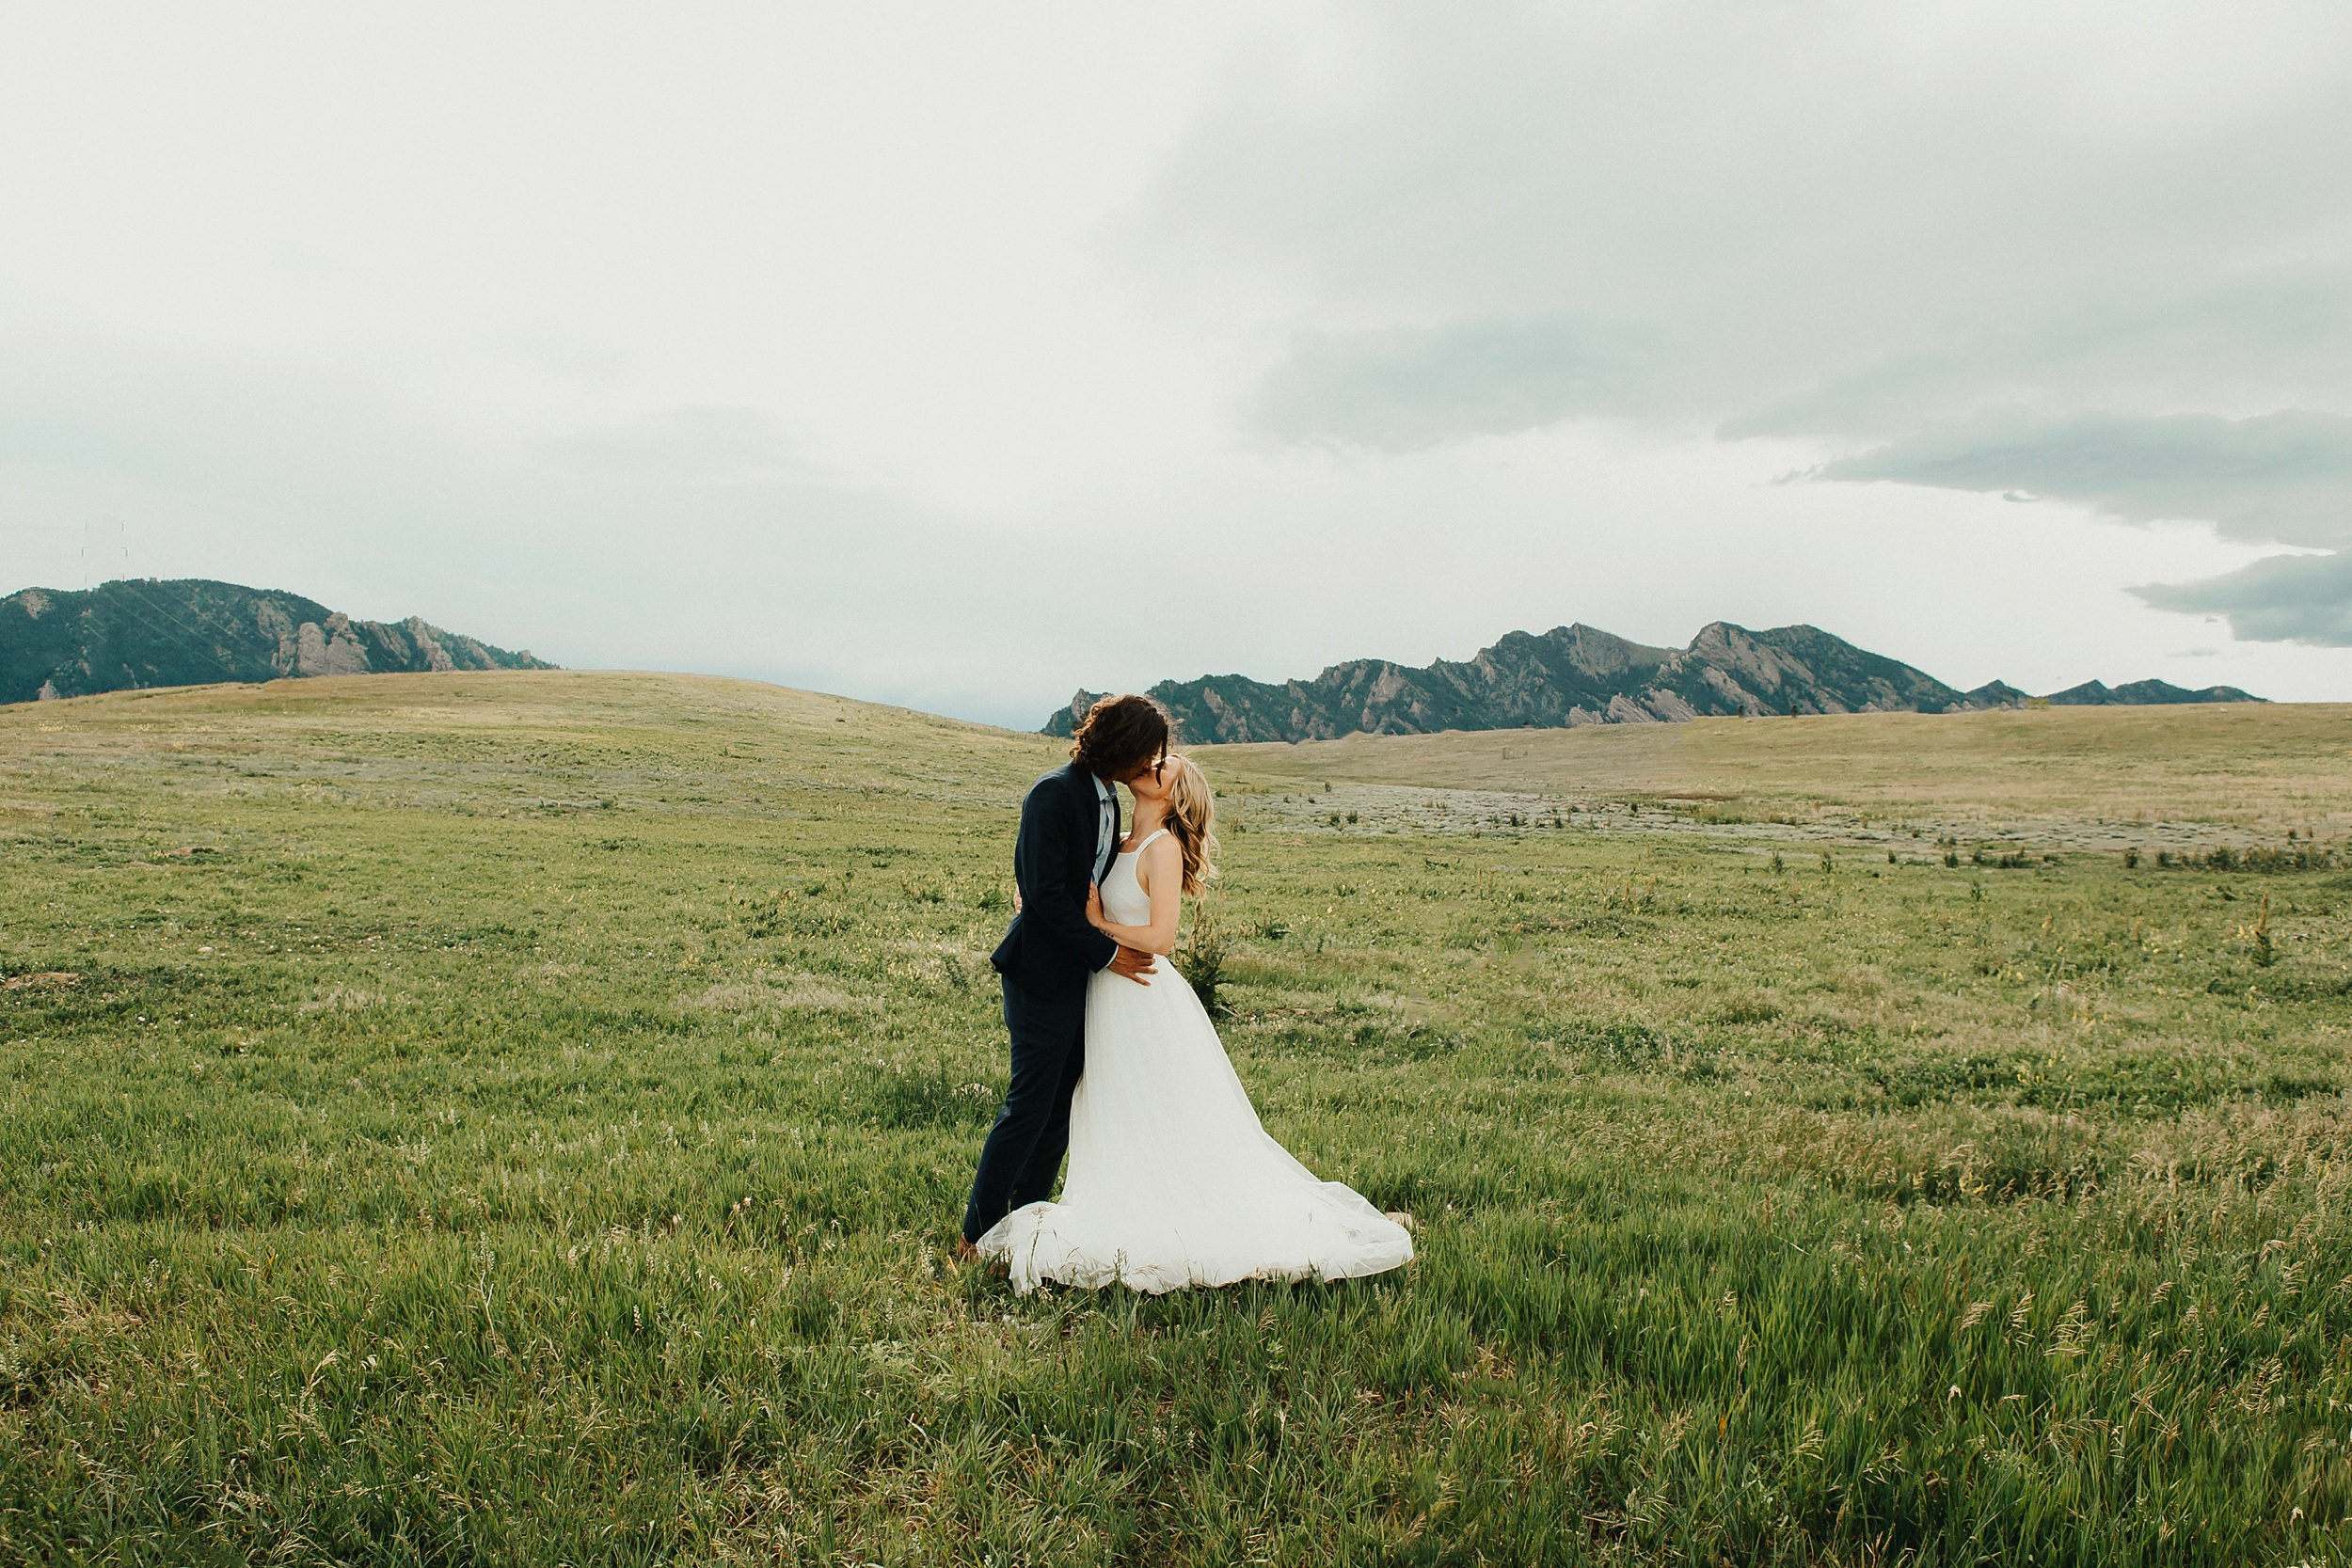 Boulder_Colorado_Elopement_Fringe_Boho_Mountains-4.jpg